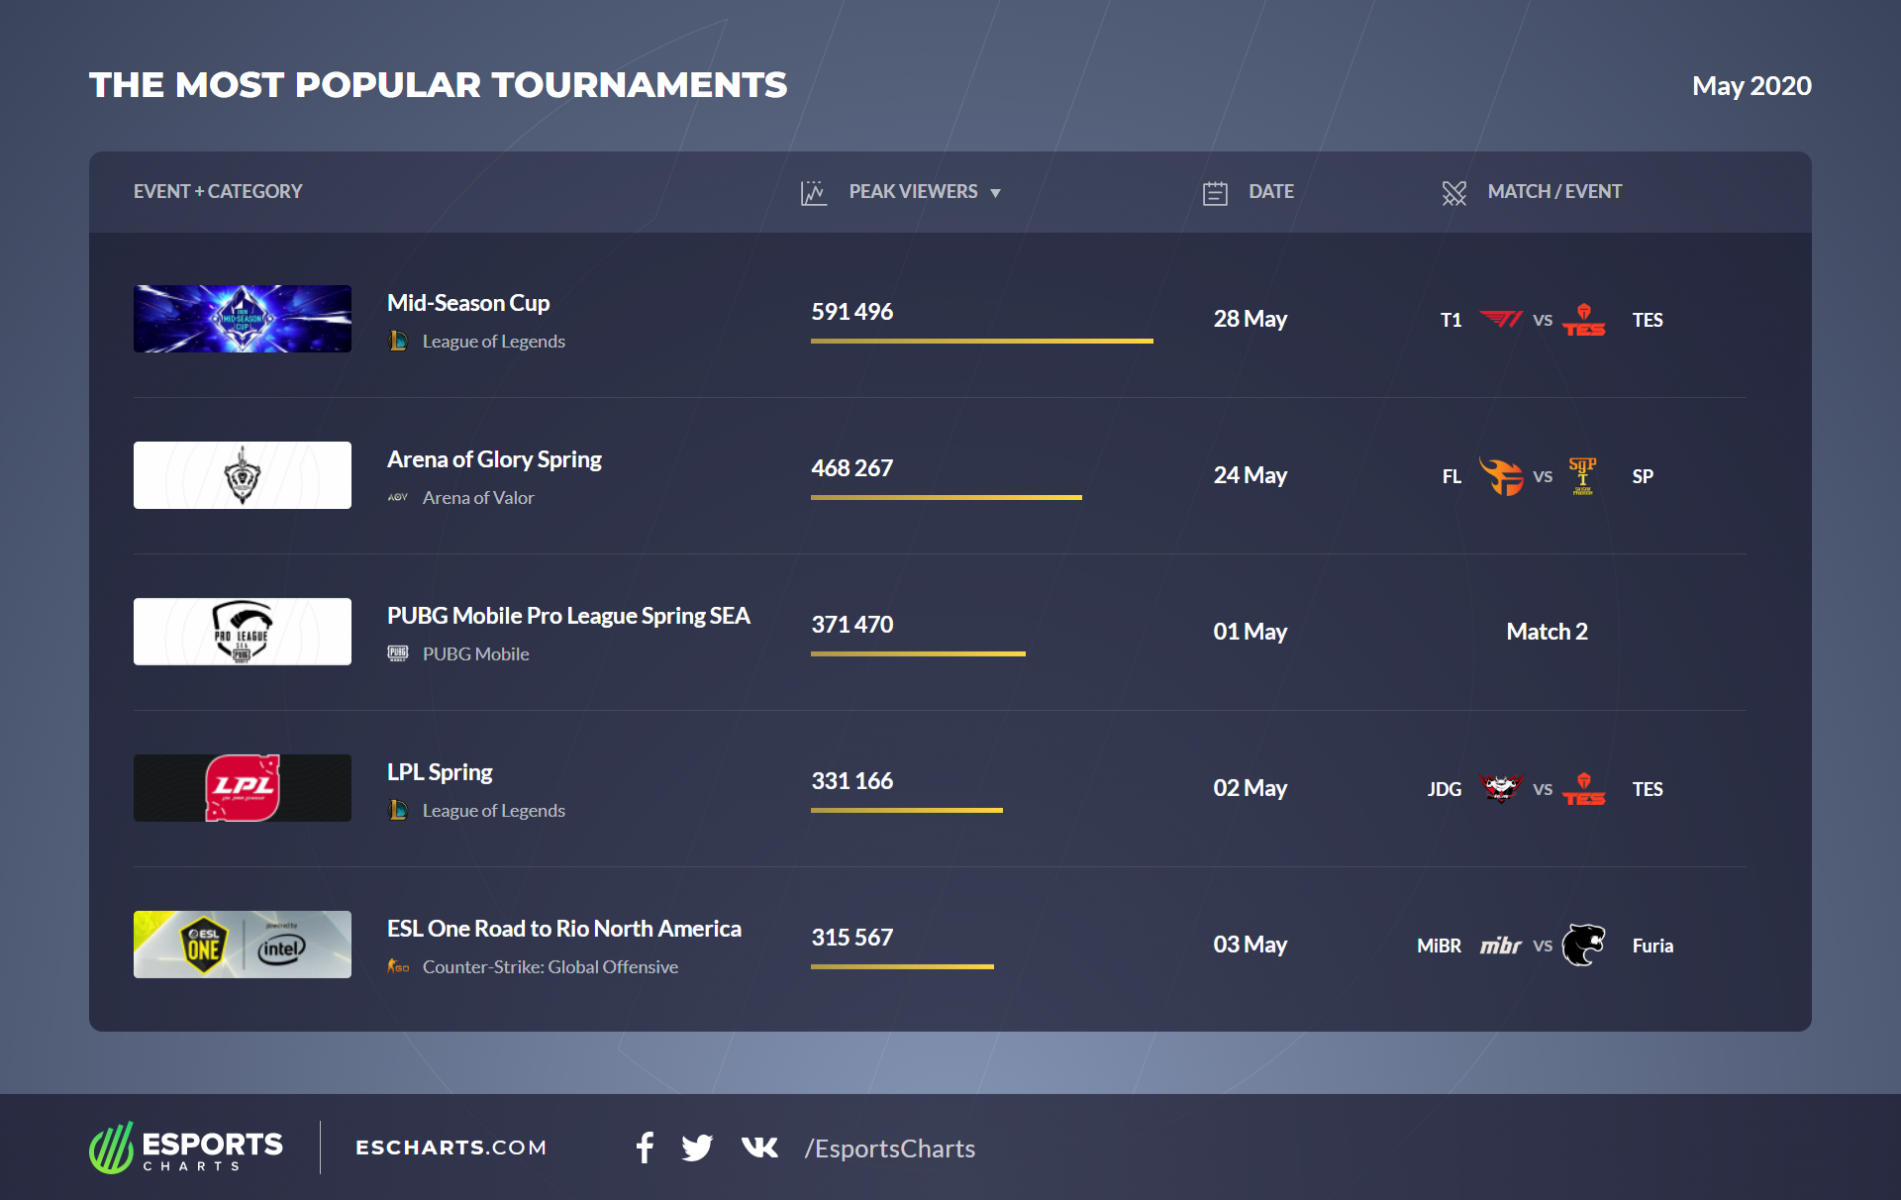 Most Popular Tournaments May 2020